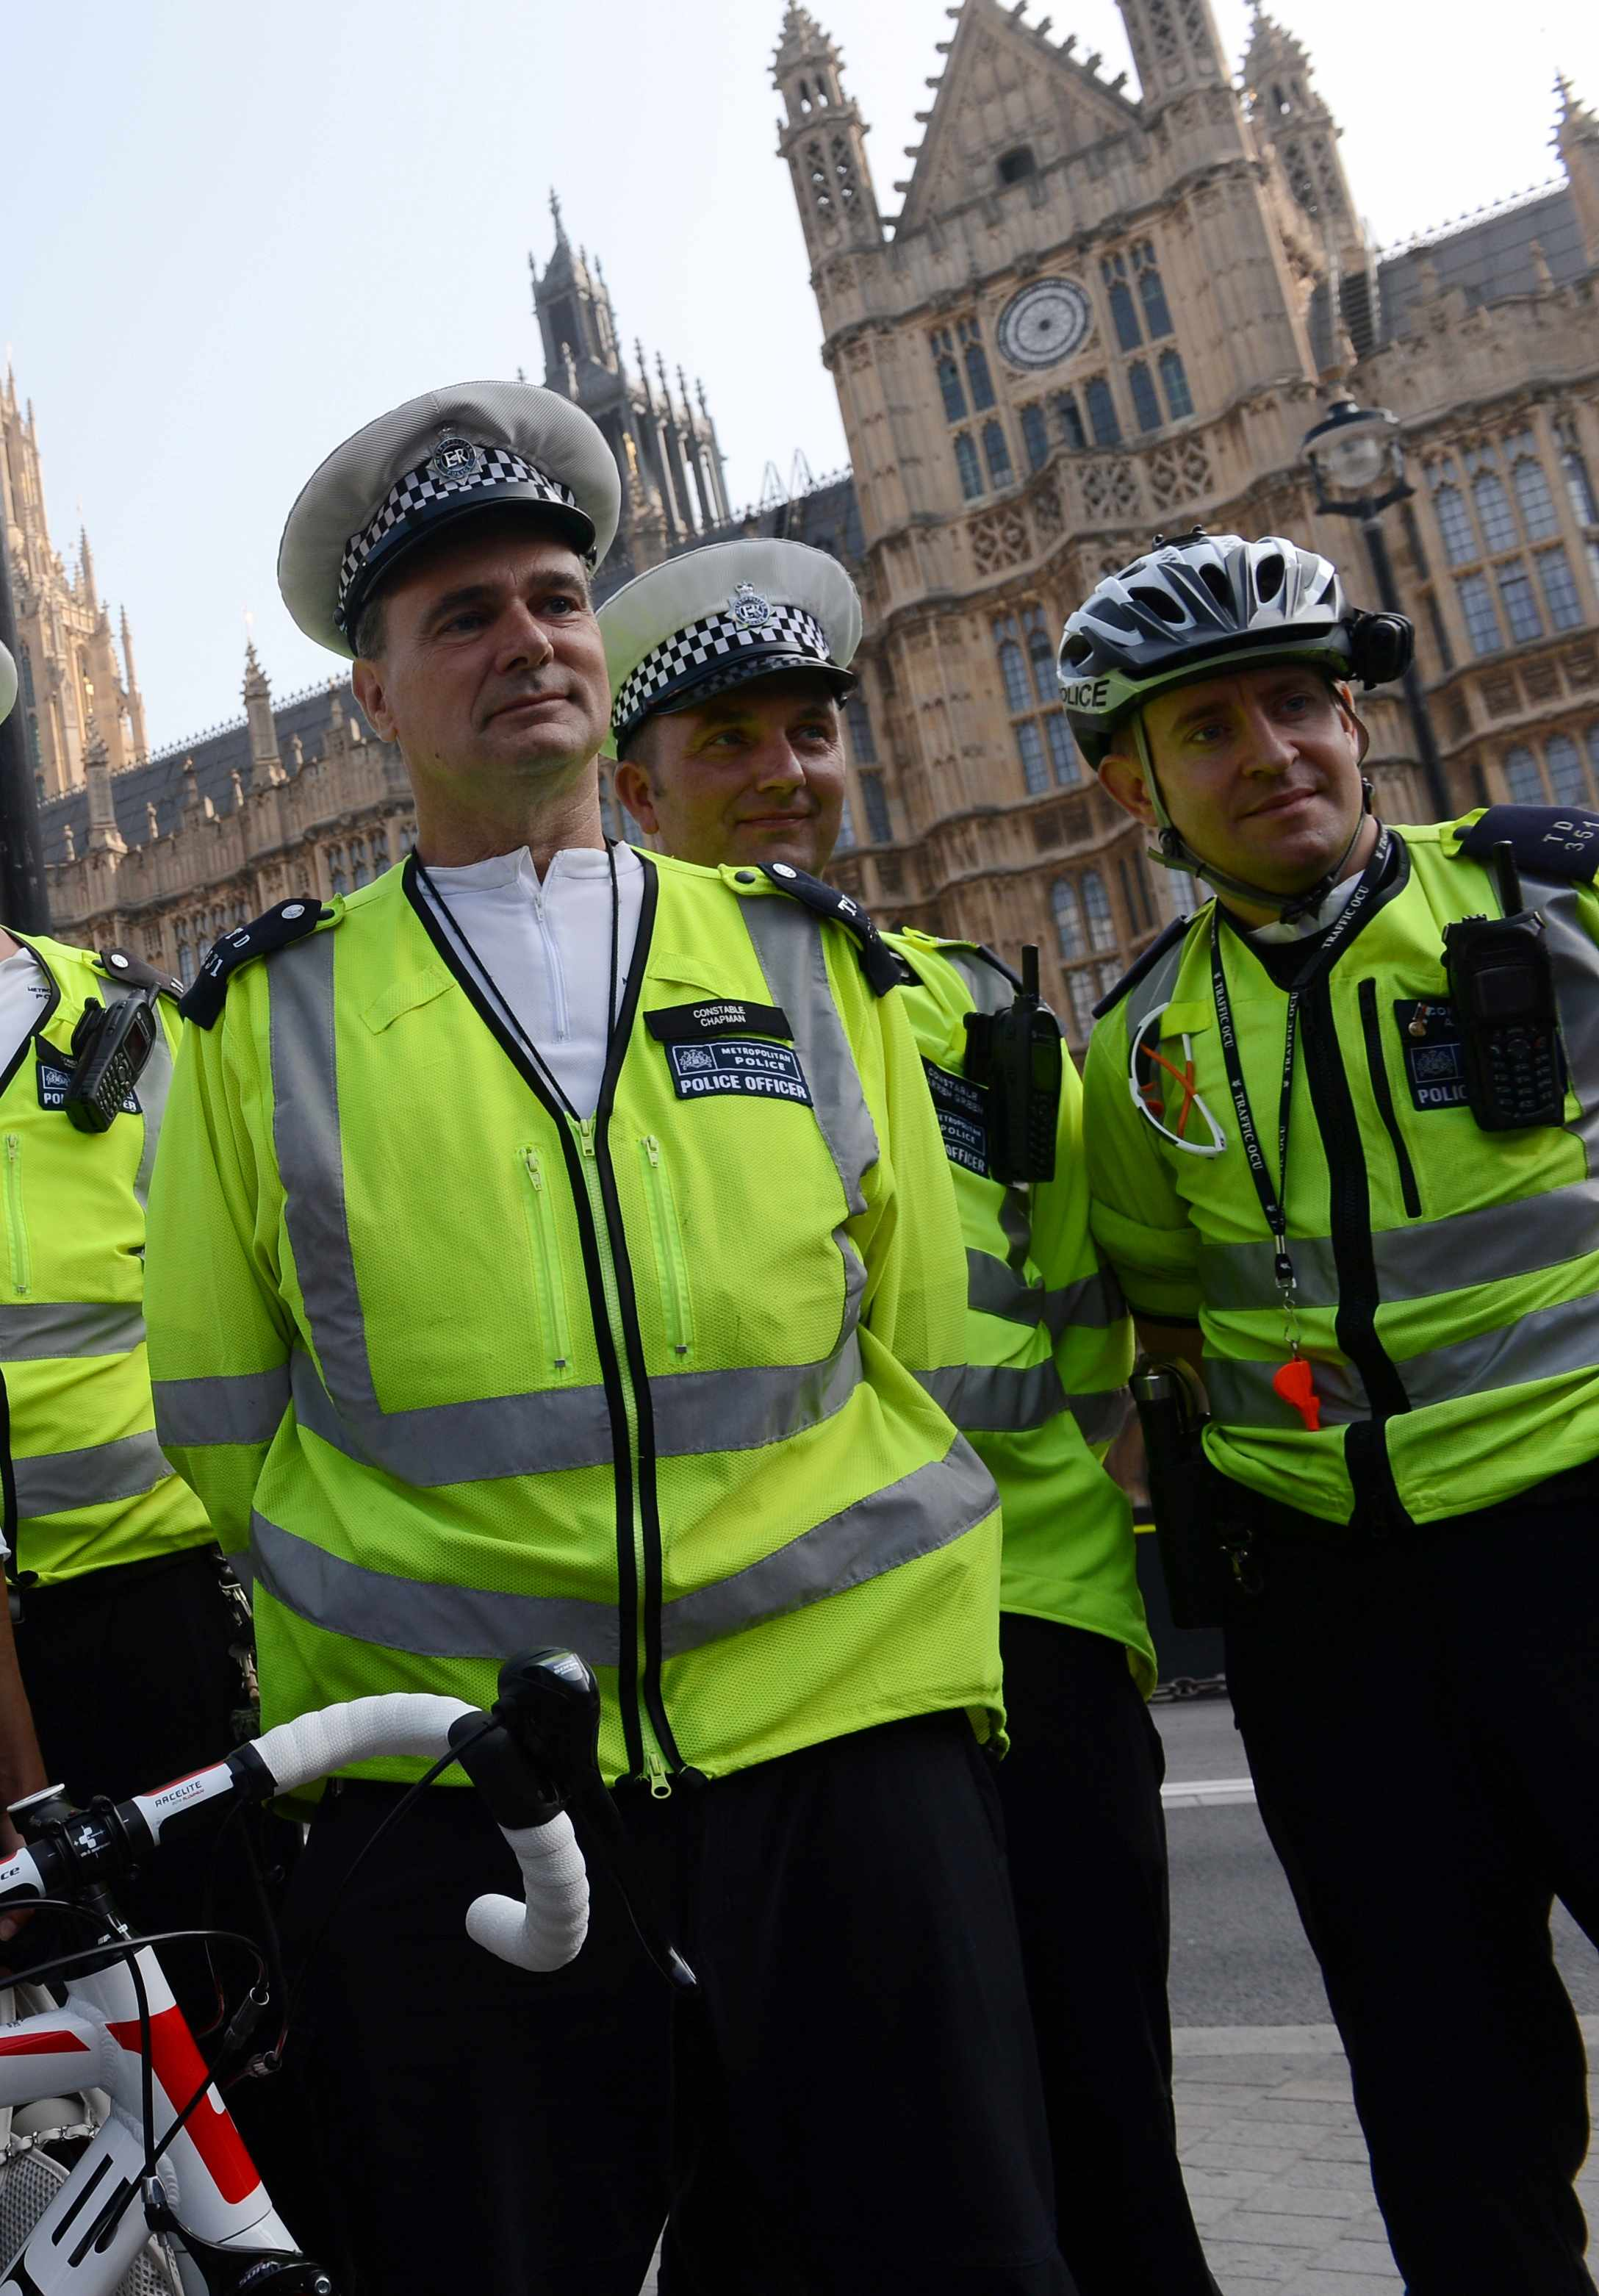 The Met Police have launched a crackdown and dangerous road users